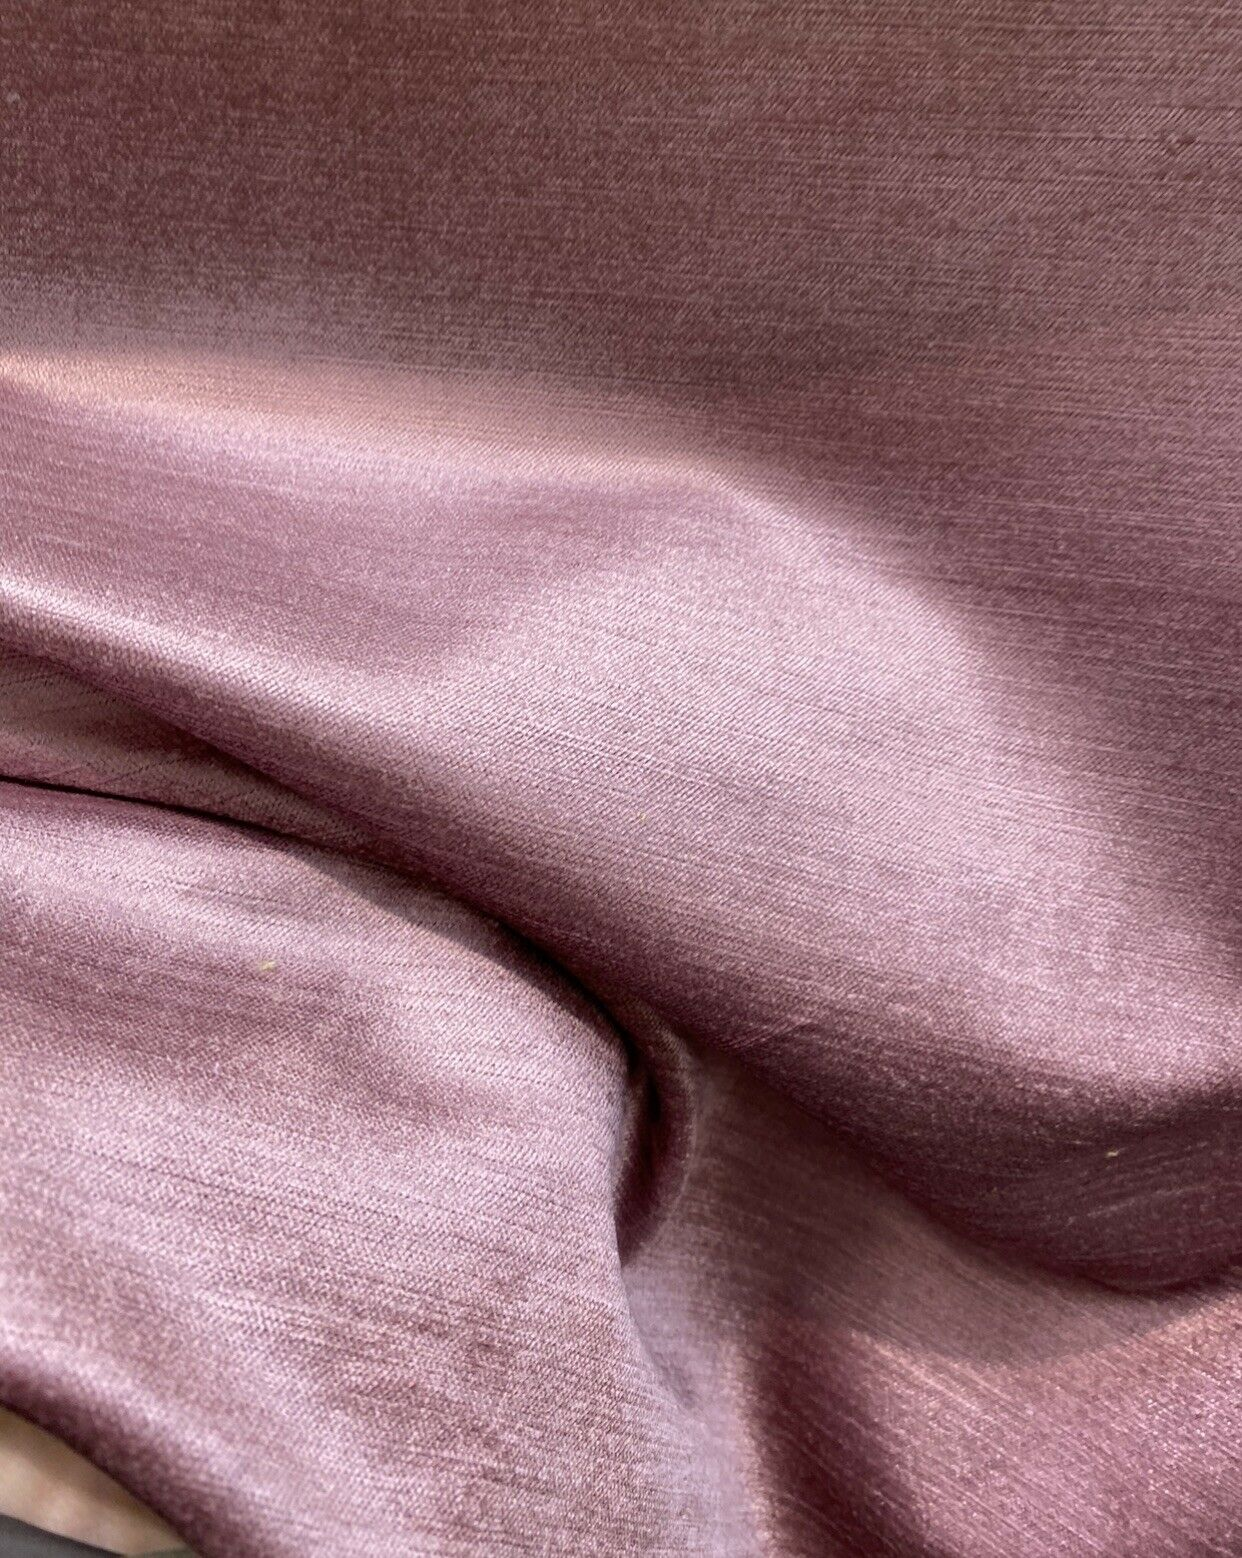 NEW! Designer Soft Heavy Weight Velvet Fabric -Mauve Pink - Upholstery BTY